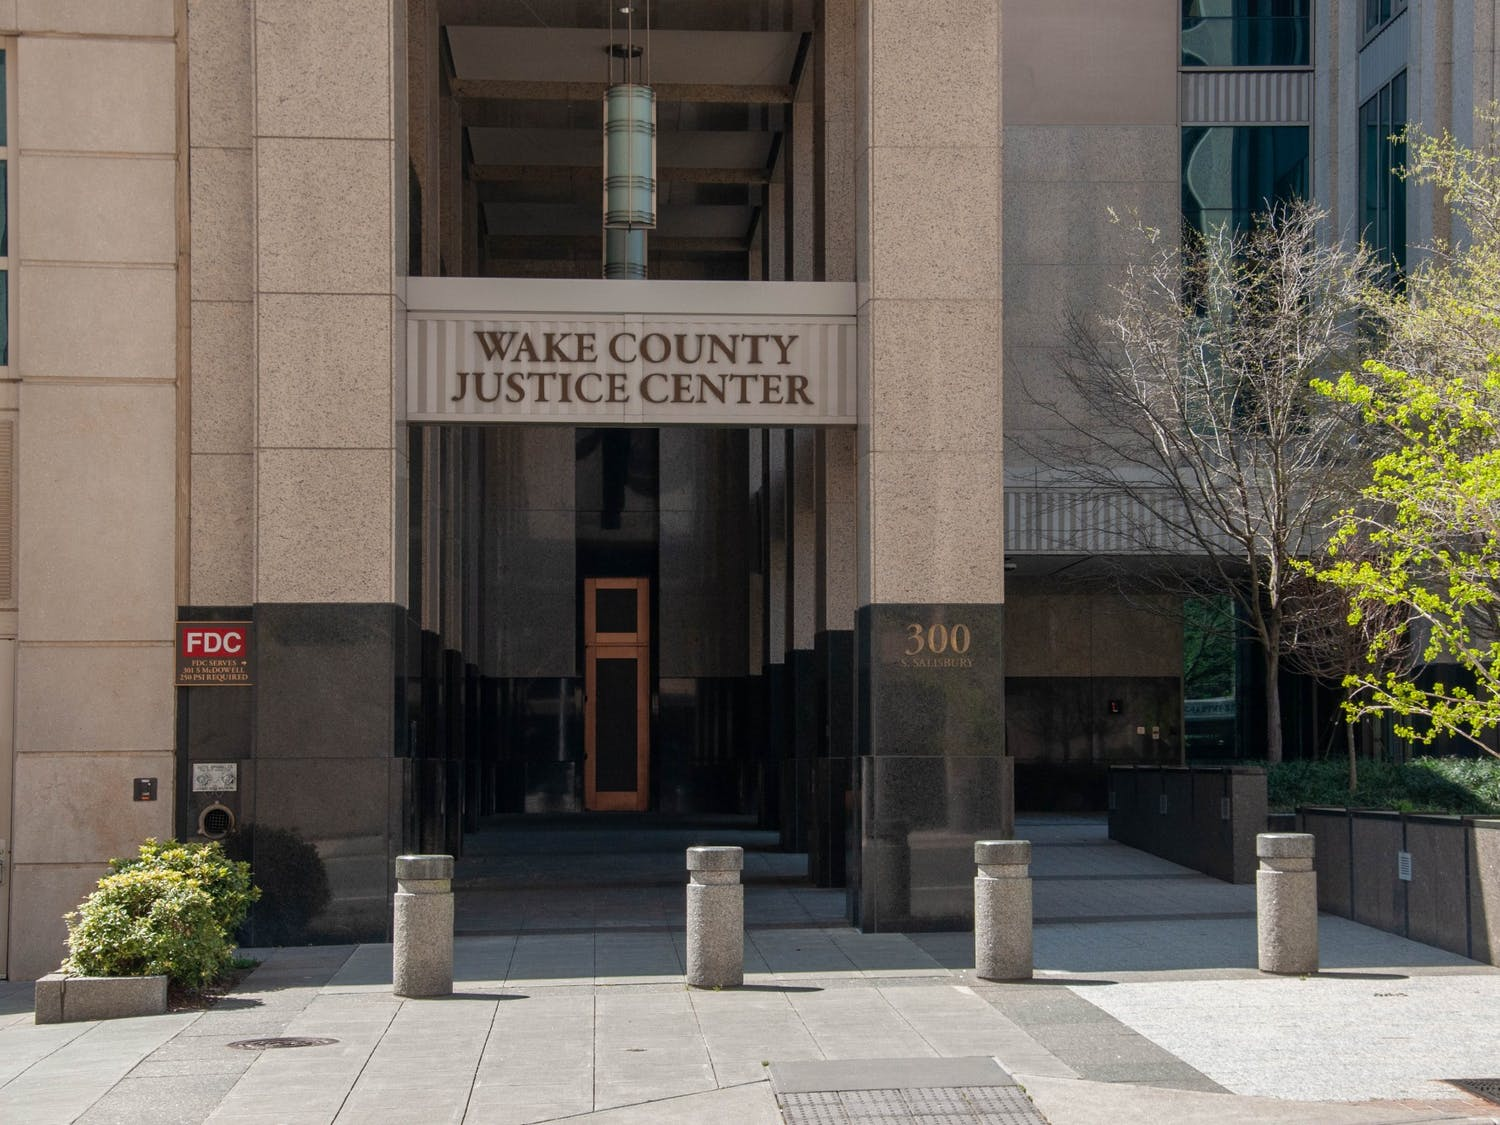 The Wake County Justice Center in downtown Raleigh, NC on April 4, 2021. A bill that was recently passed in the senate about raising the minimum age for juvenile delinquency from 6 to 10 now moves to the house.